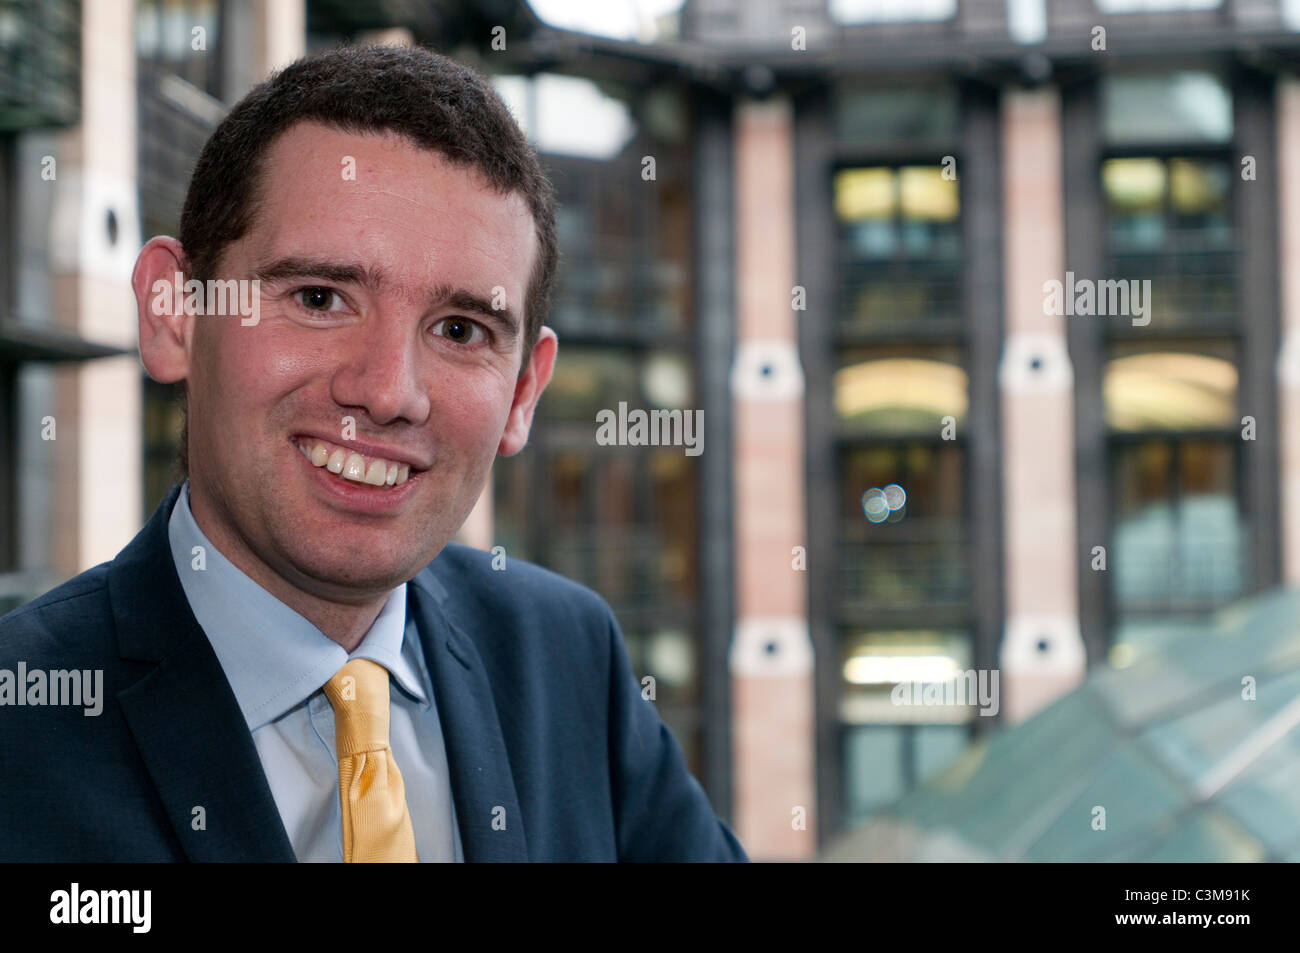 Liberal Democrat MP for Norwich South,Simon Wright at Portcullis House, London - Stock Image